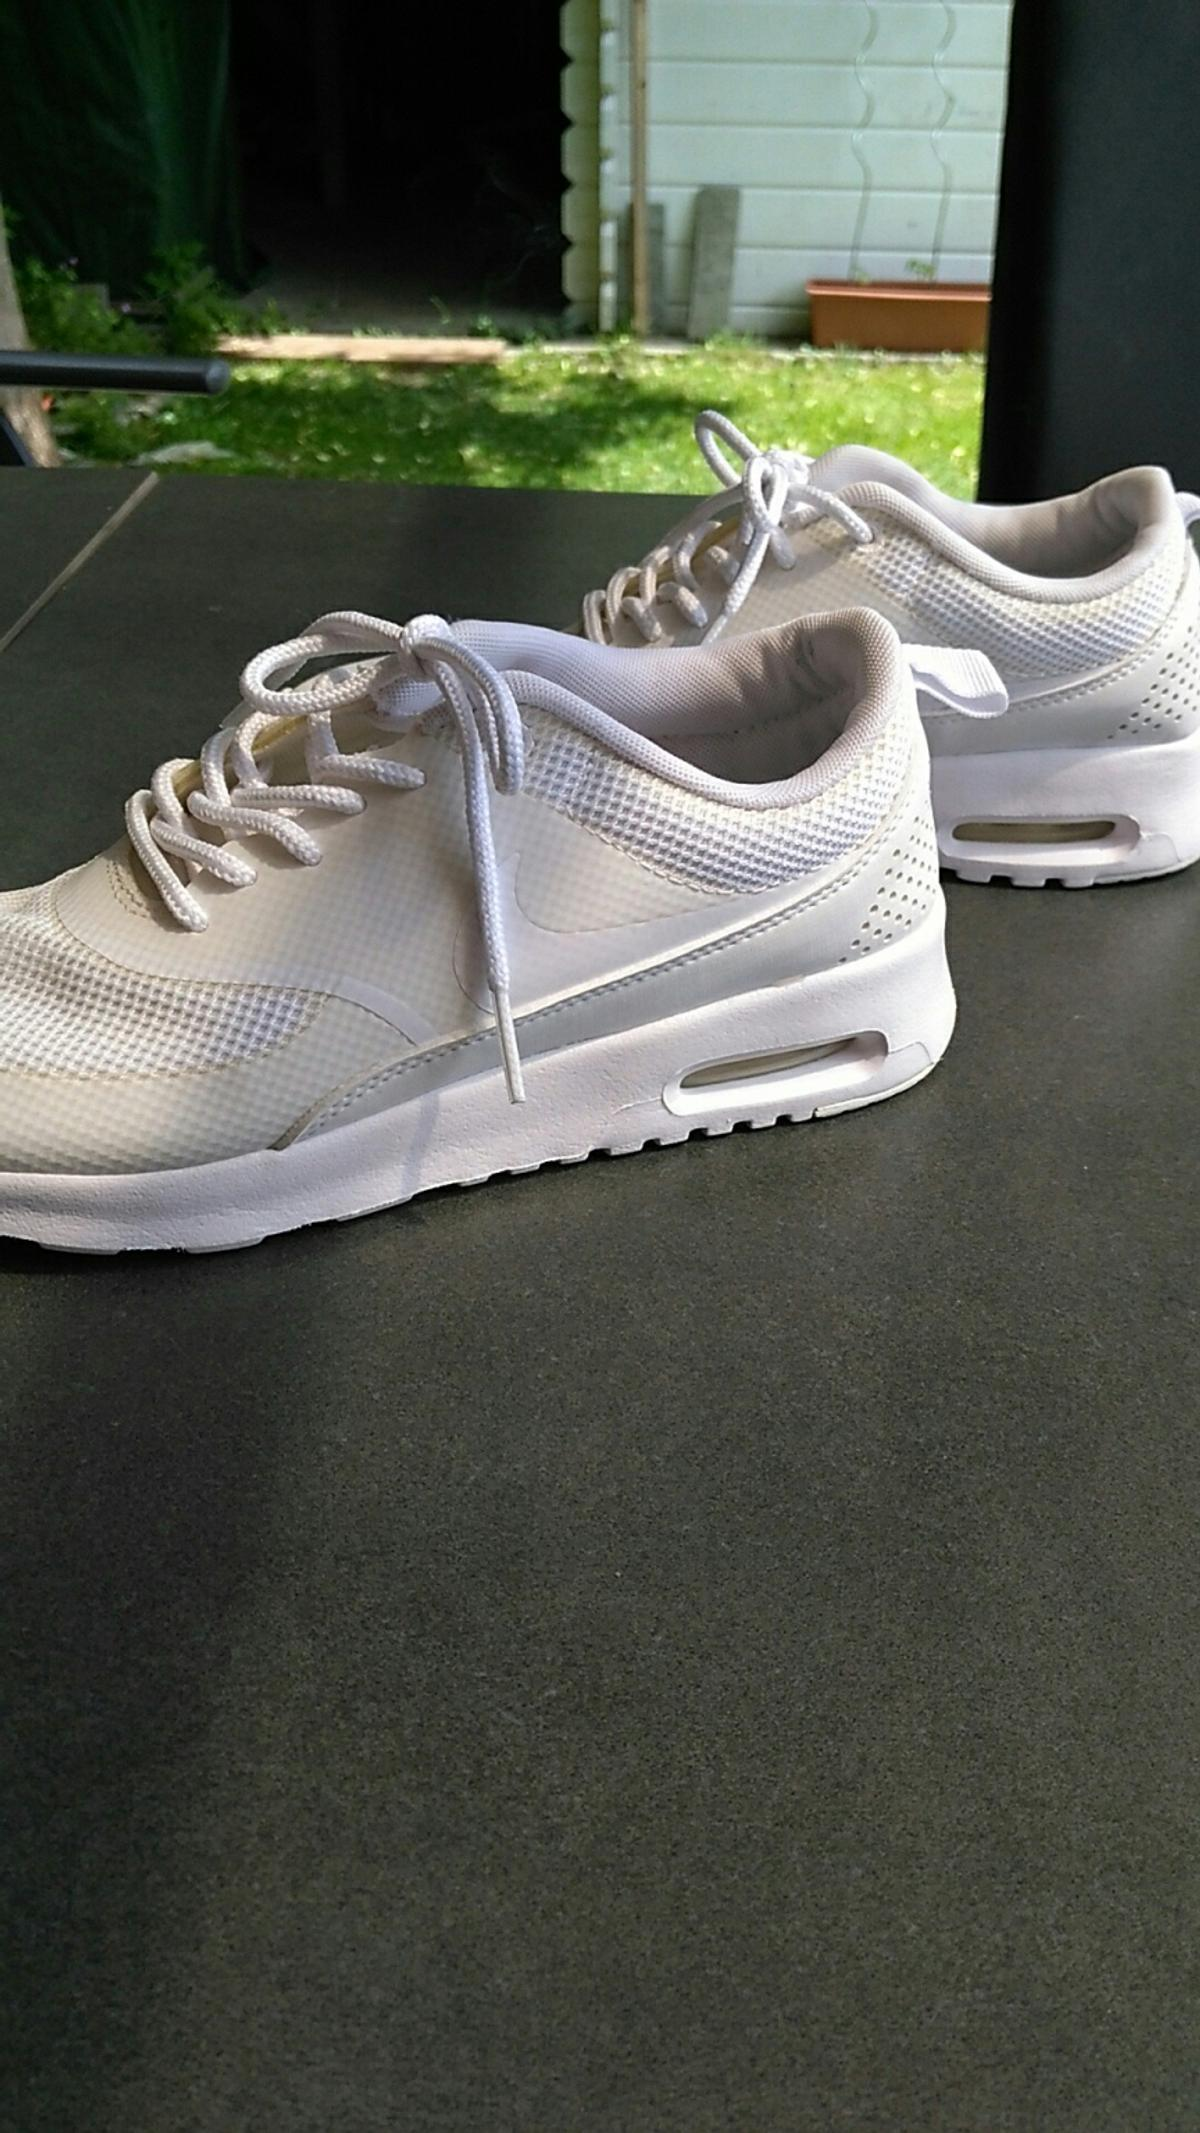 Nike air max Thea in 85630 Grasbrunn for €25.00 for sale